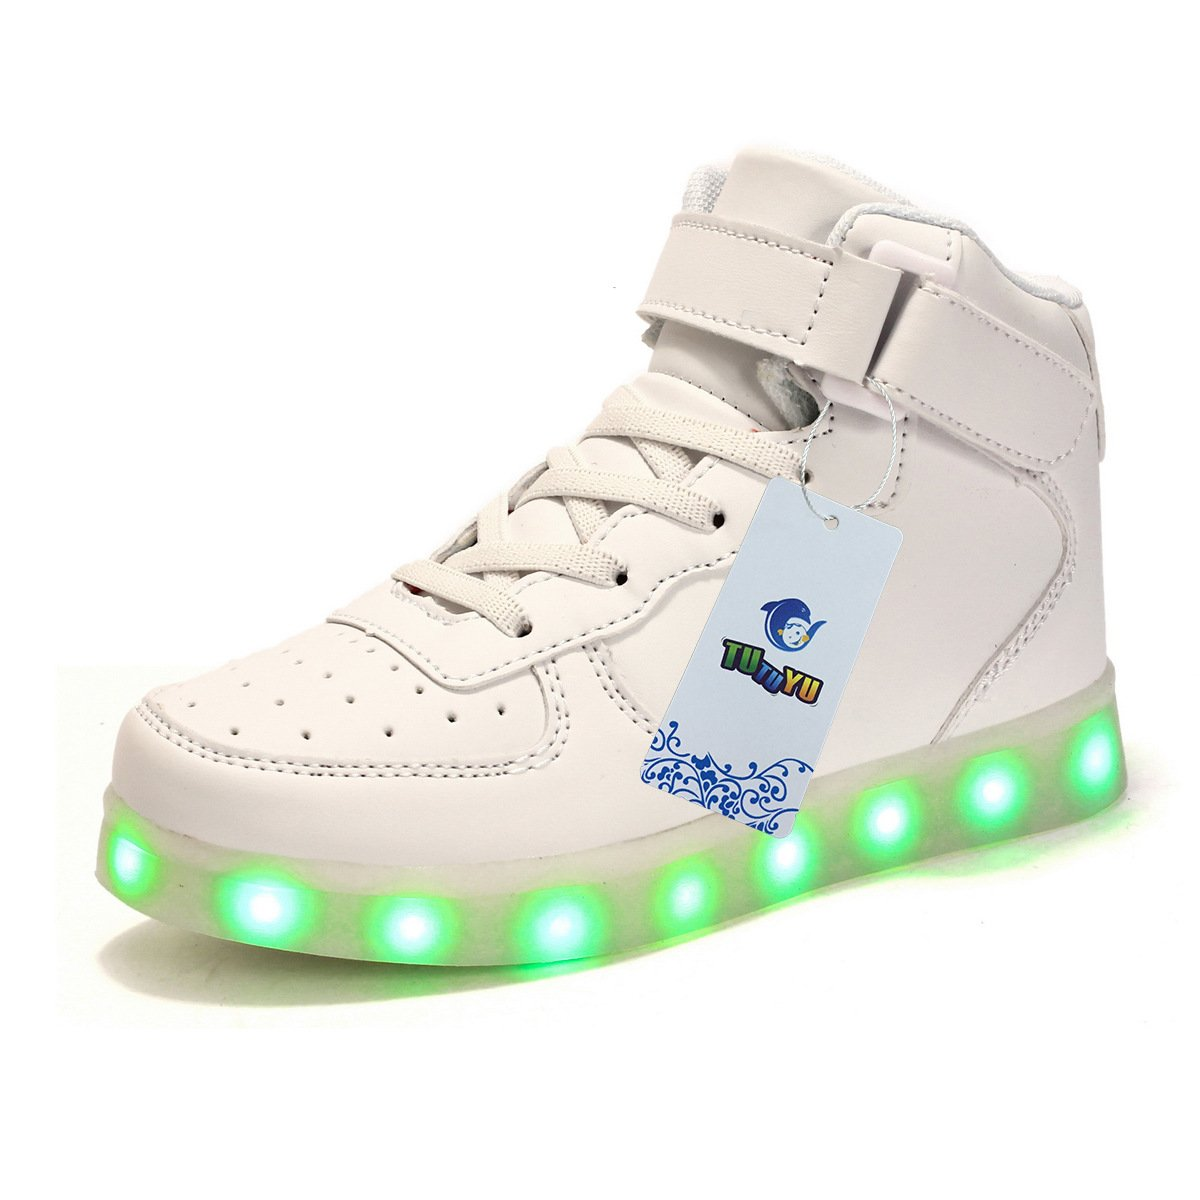 TUTUYU Boys and Grils 11 Colors LED Light Up Shoes High Top Fashion Flashing Sneakers